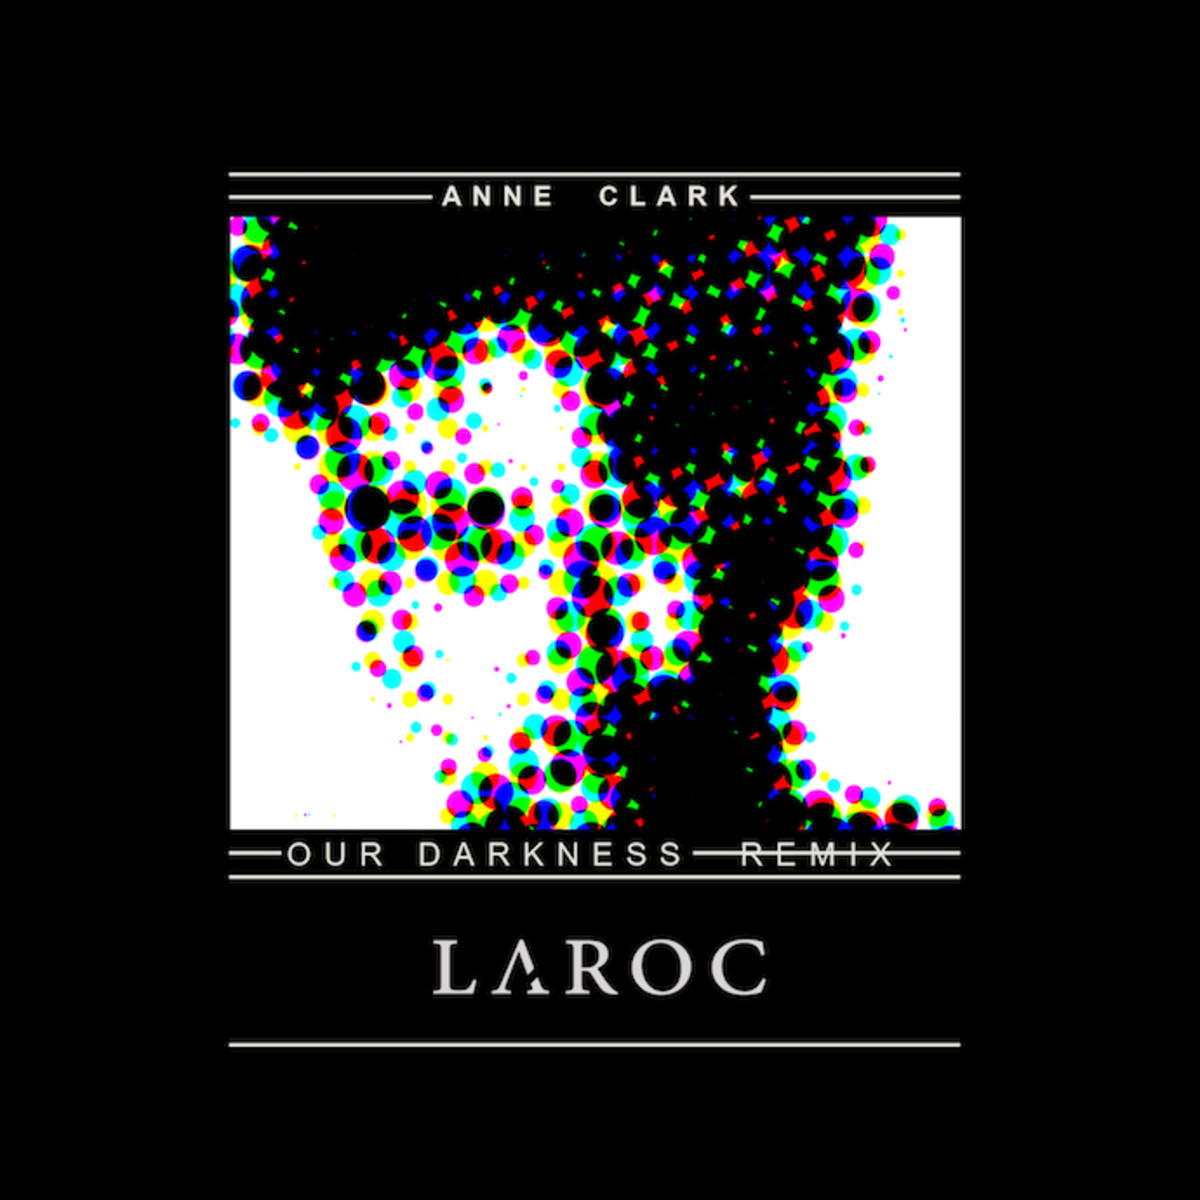 Laroc Artwork